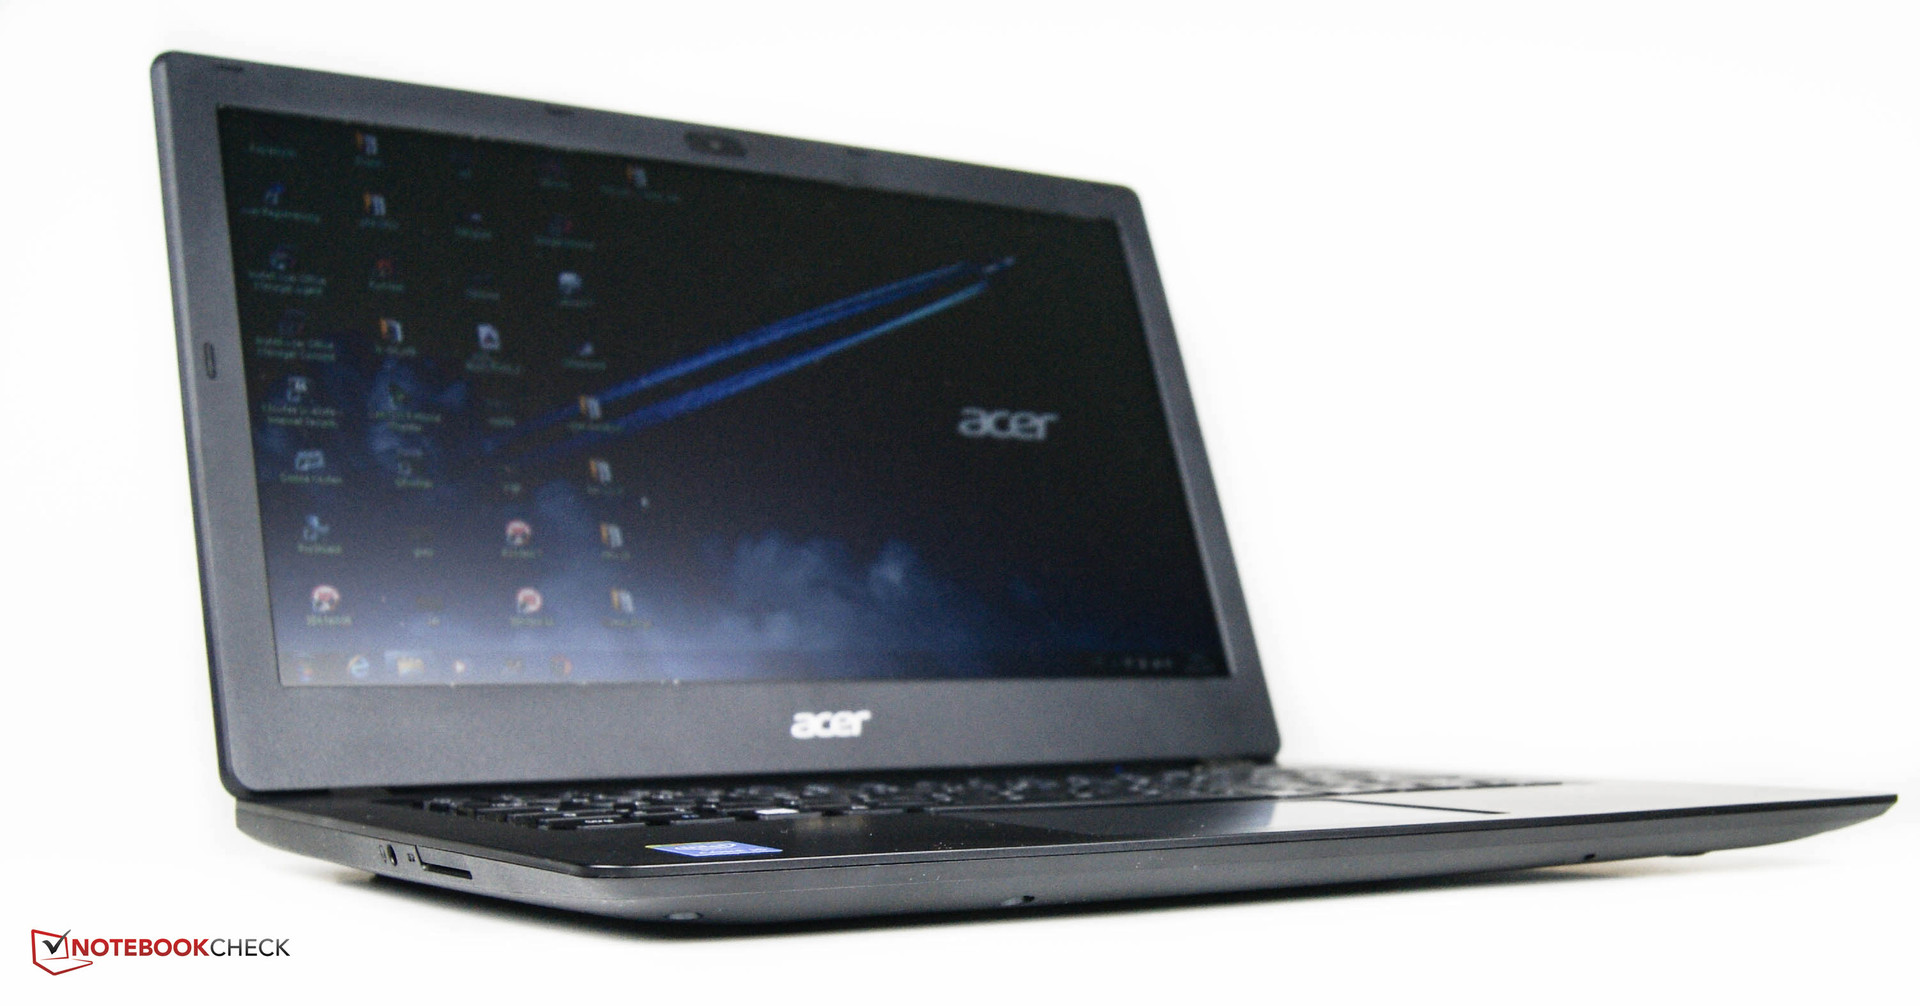 Laptop Orten Test Acer Travelmate P236 M Notebook Notebookcheck Tests